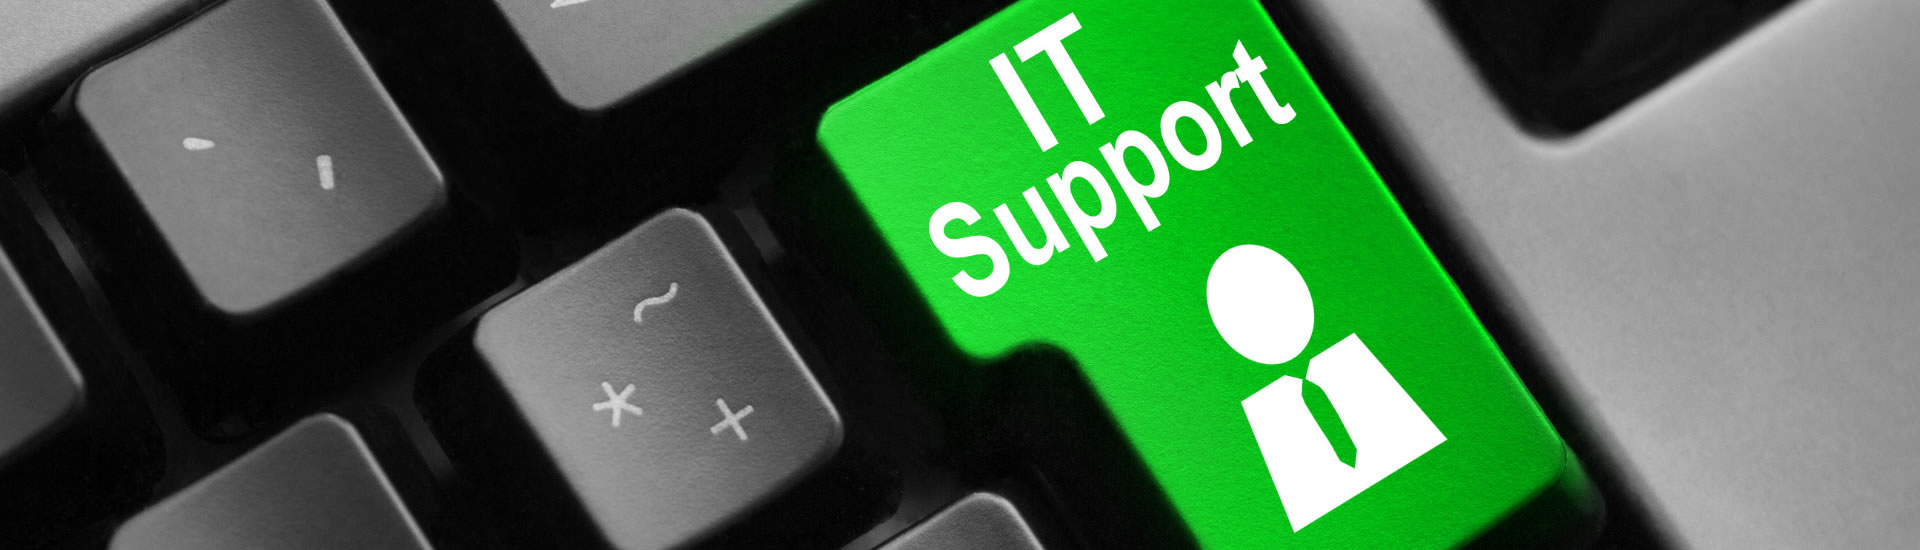 Helpdesk and Support